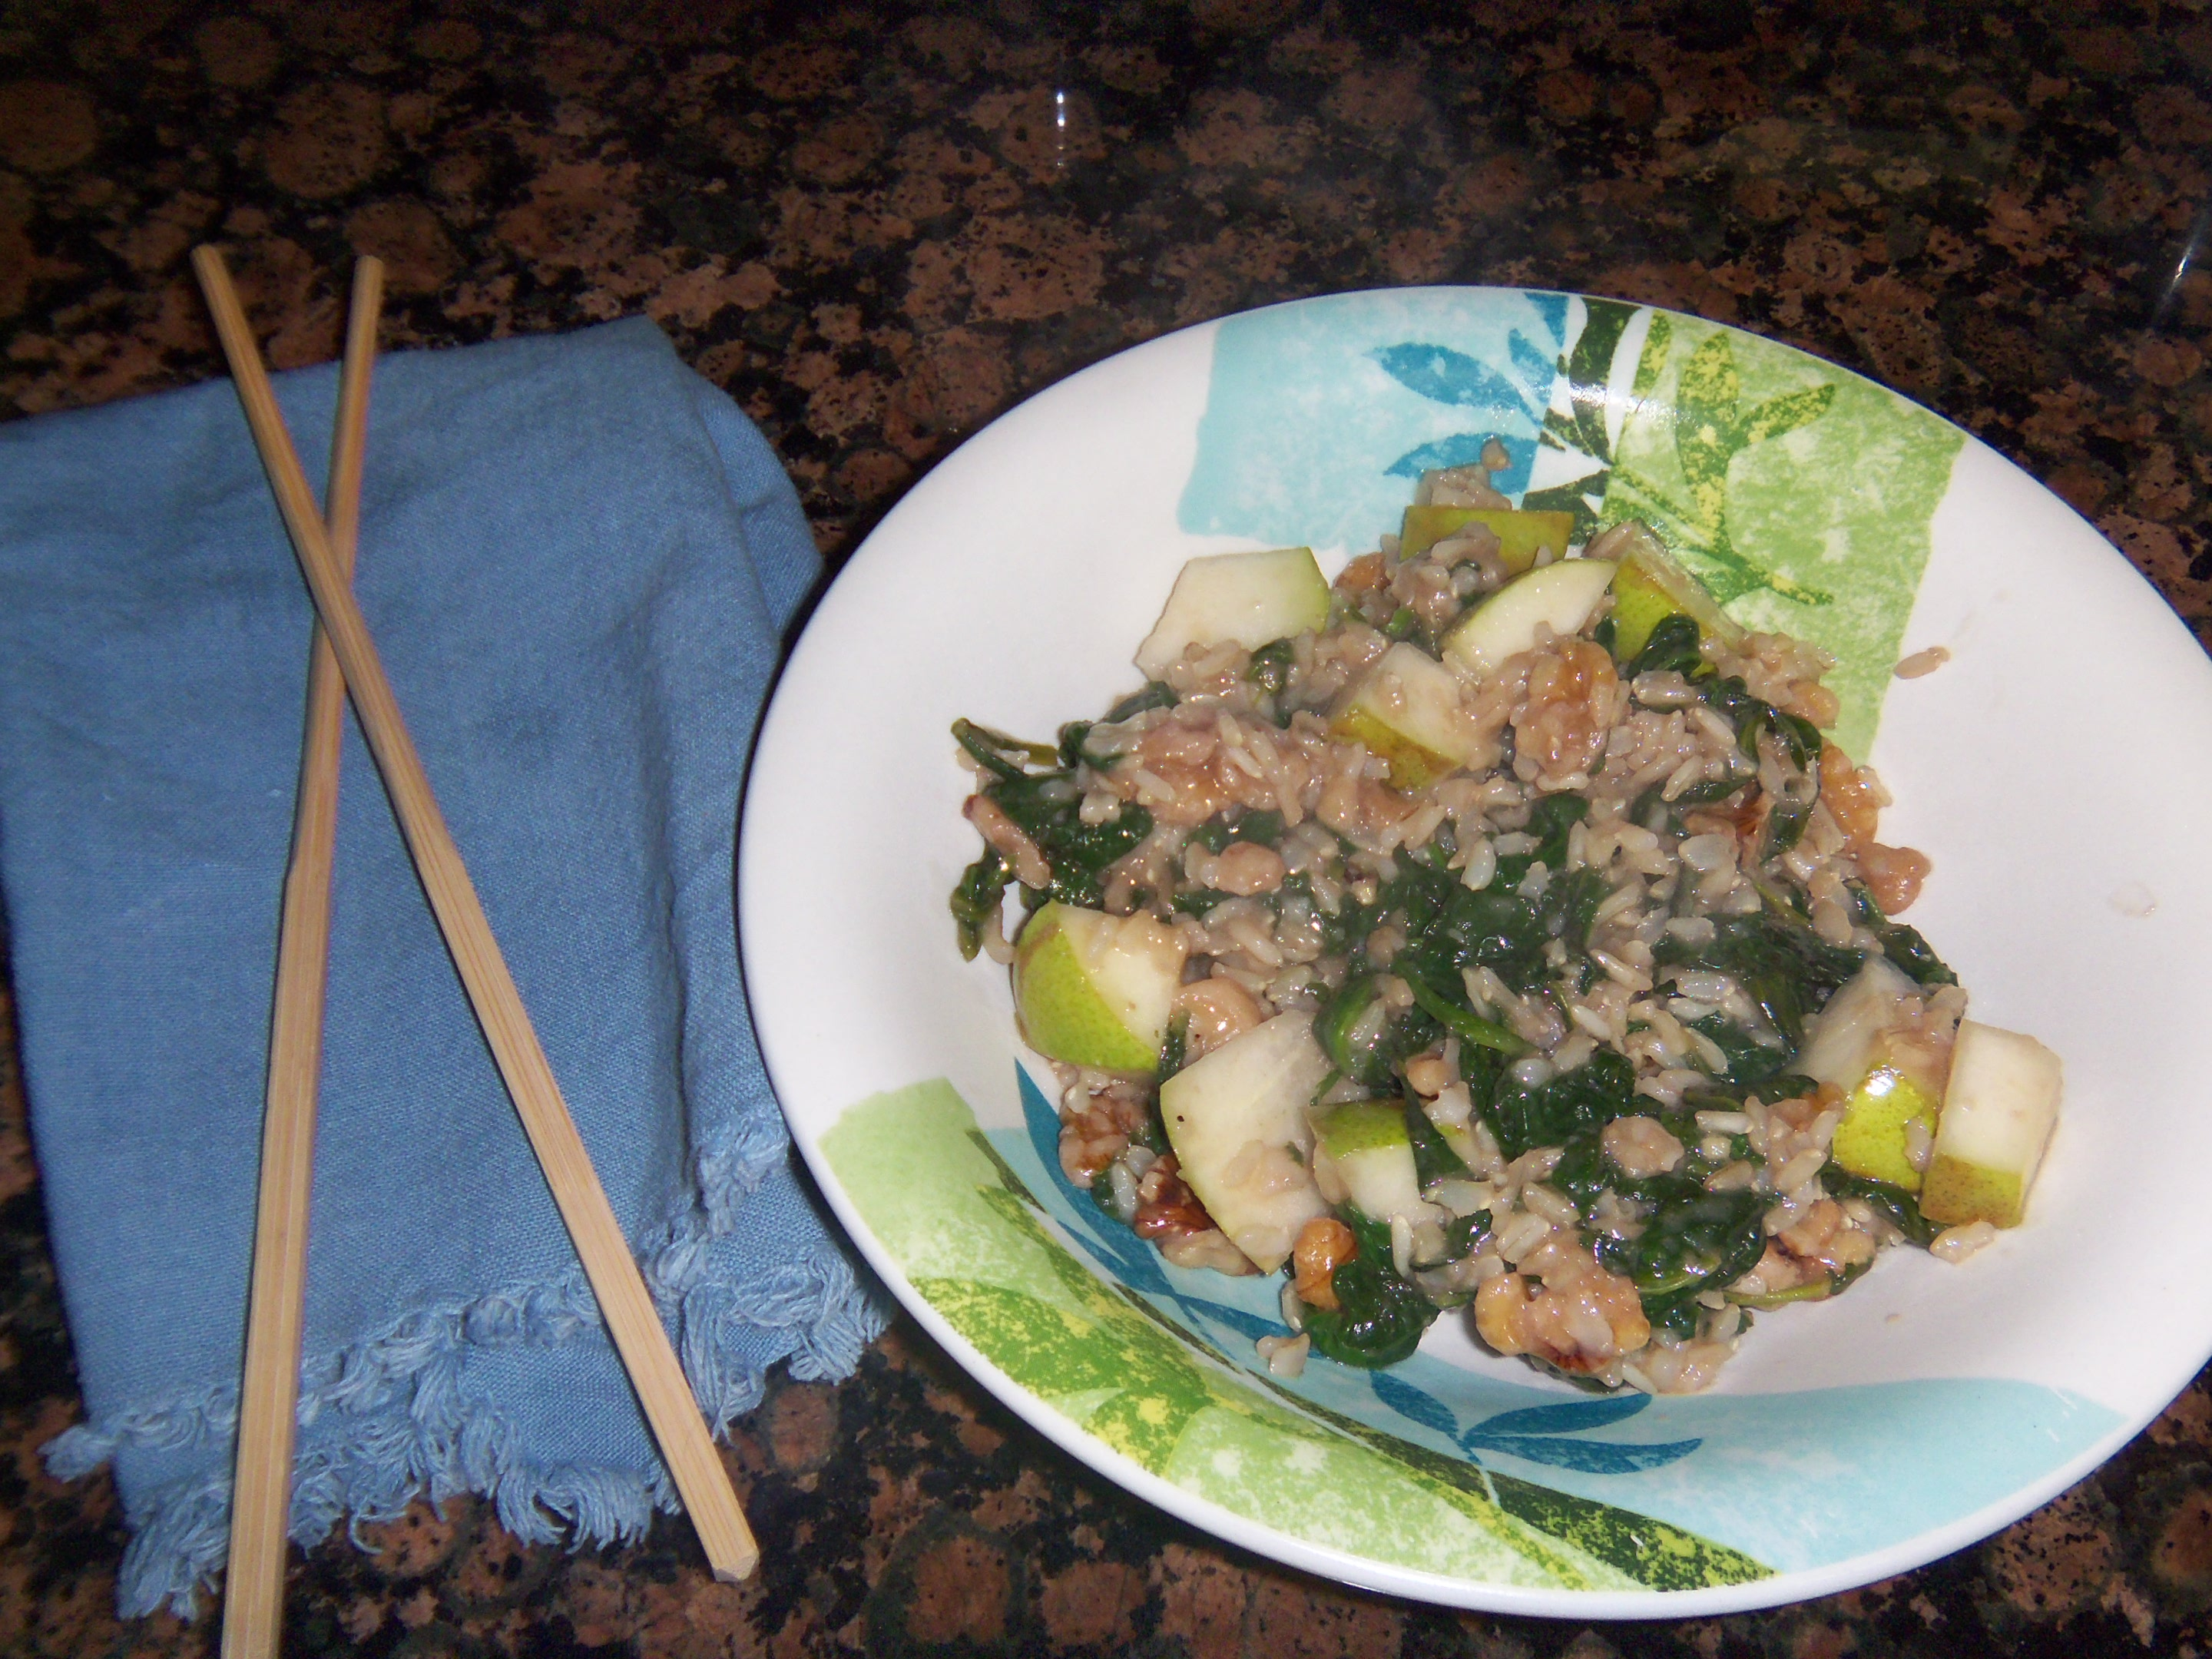 Nutty Stir-fried Rice with Spinach, Pear and Sesame Ginger Sauce